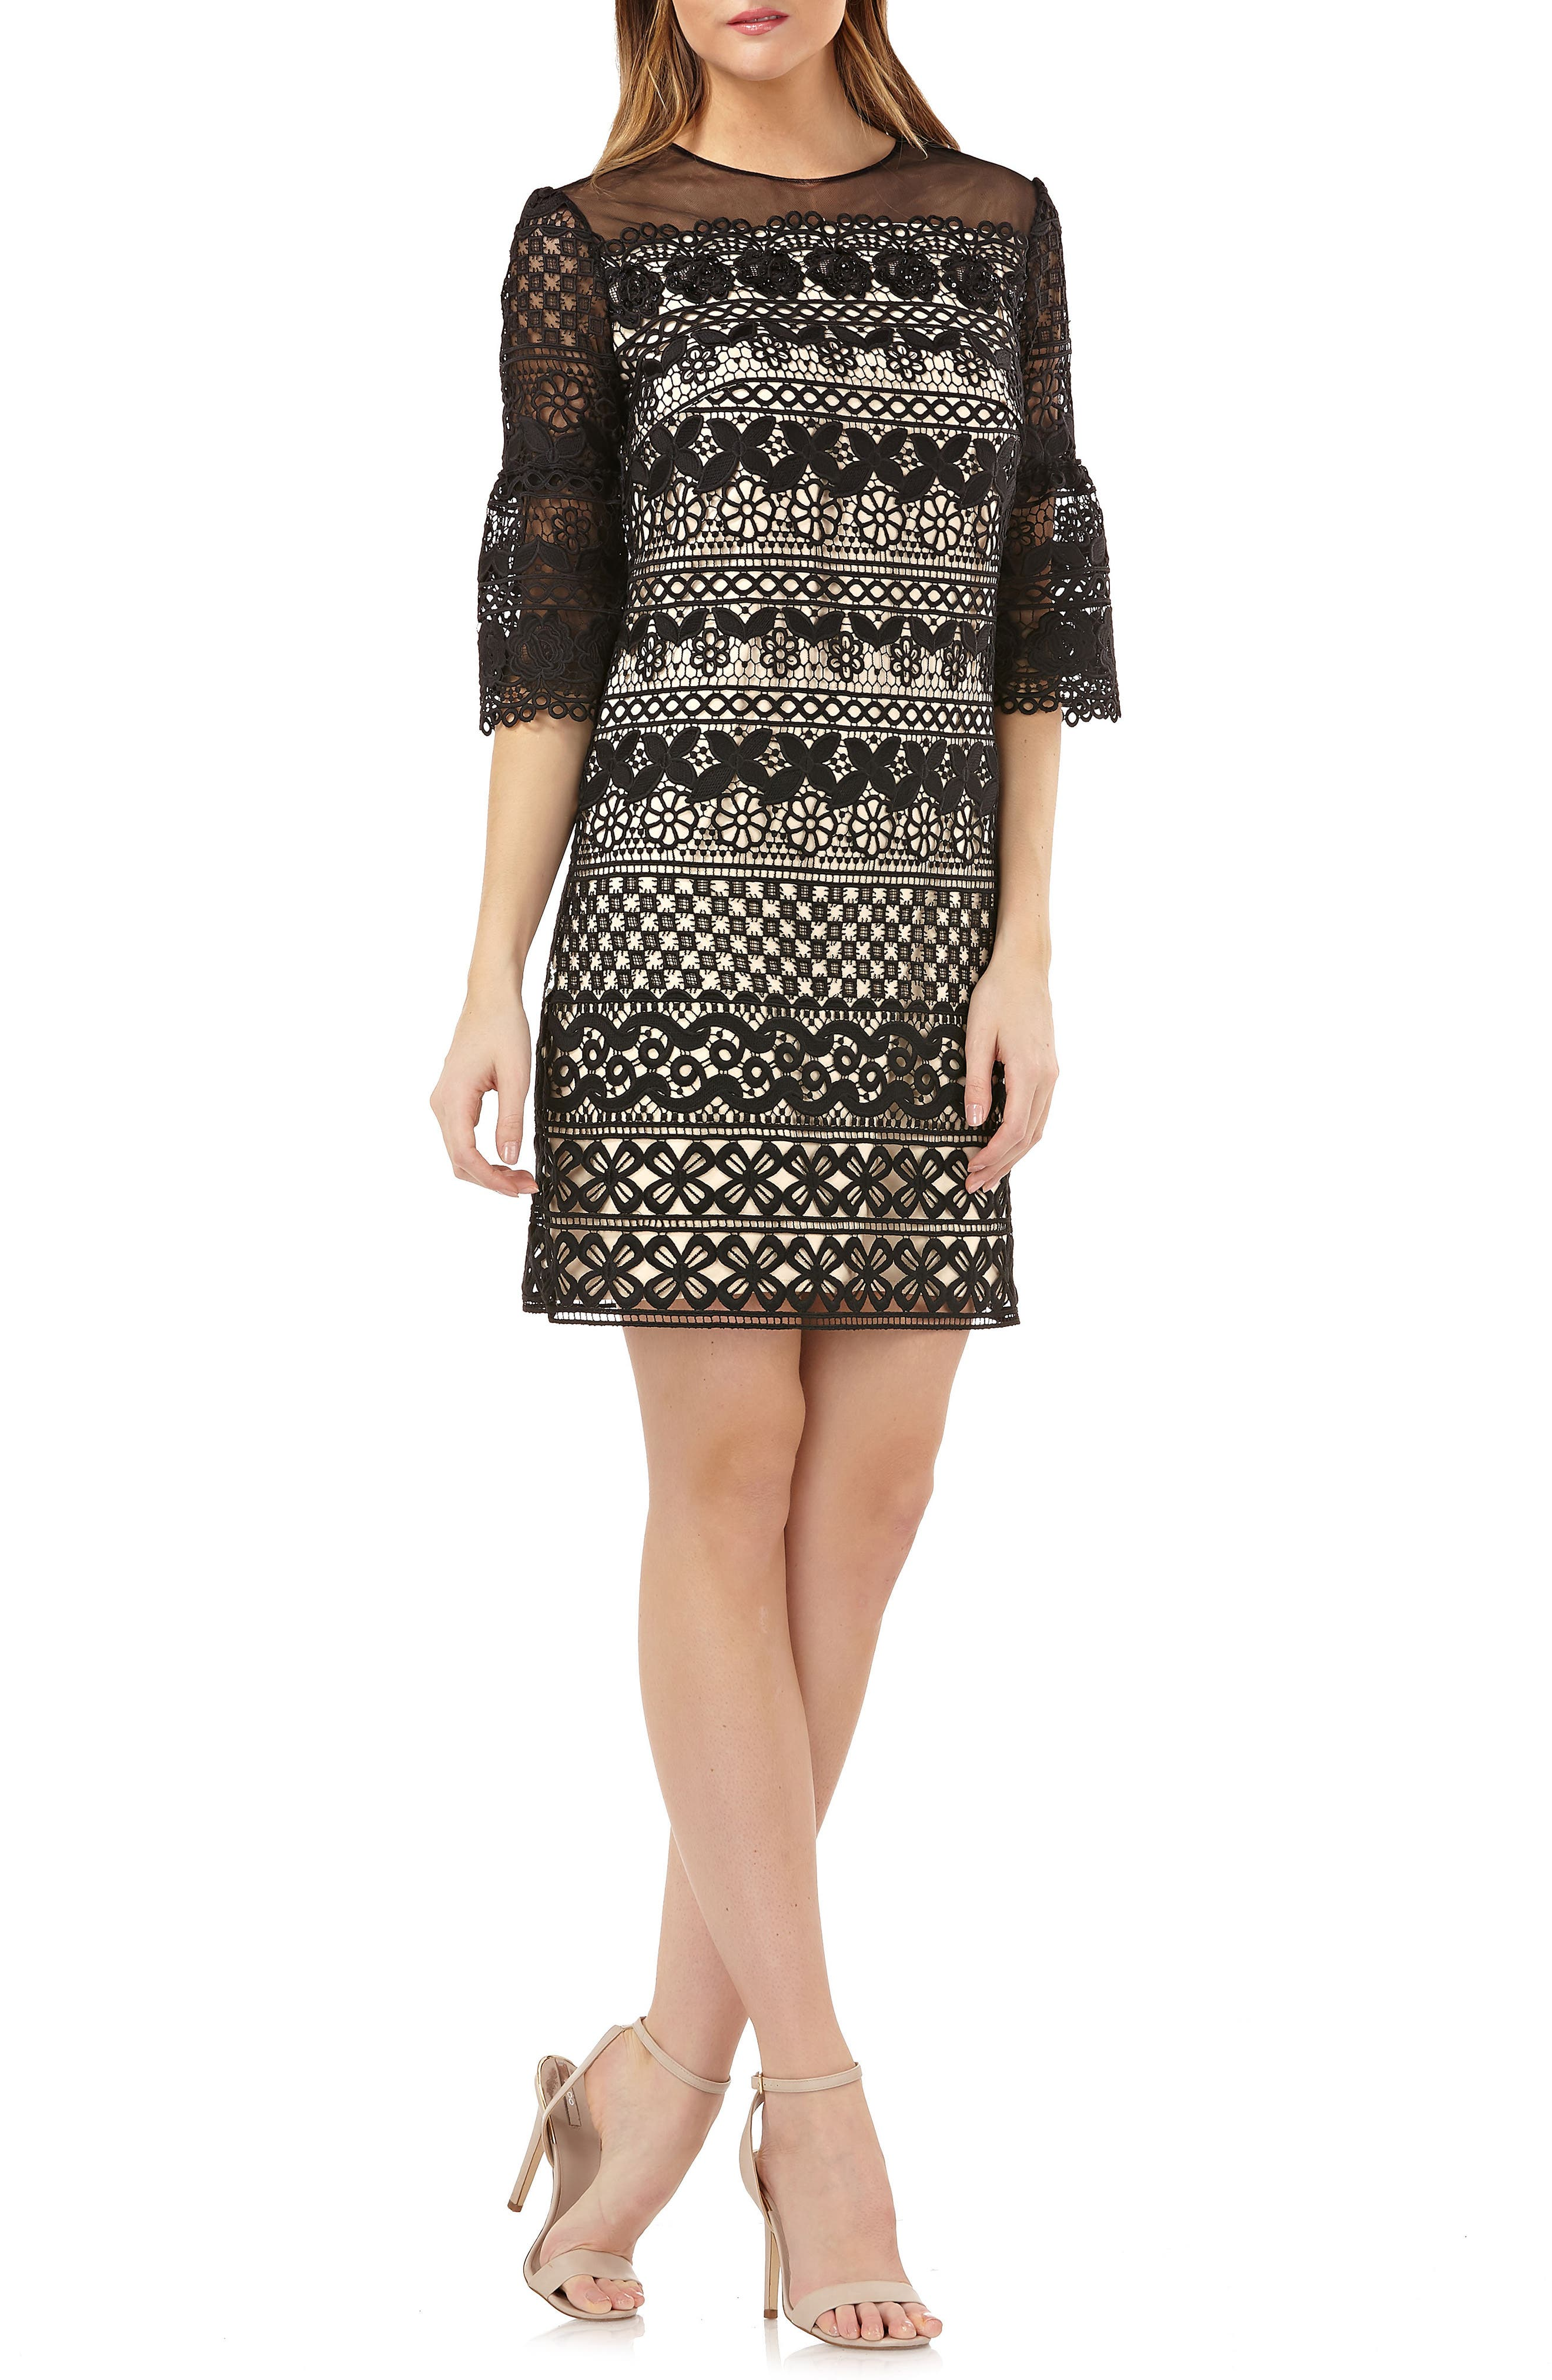 Carmen Marc Valvo Lace Shift Dress,                             Main thumbnail 1, color,                             Black Nude